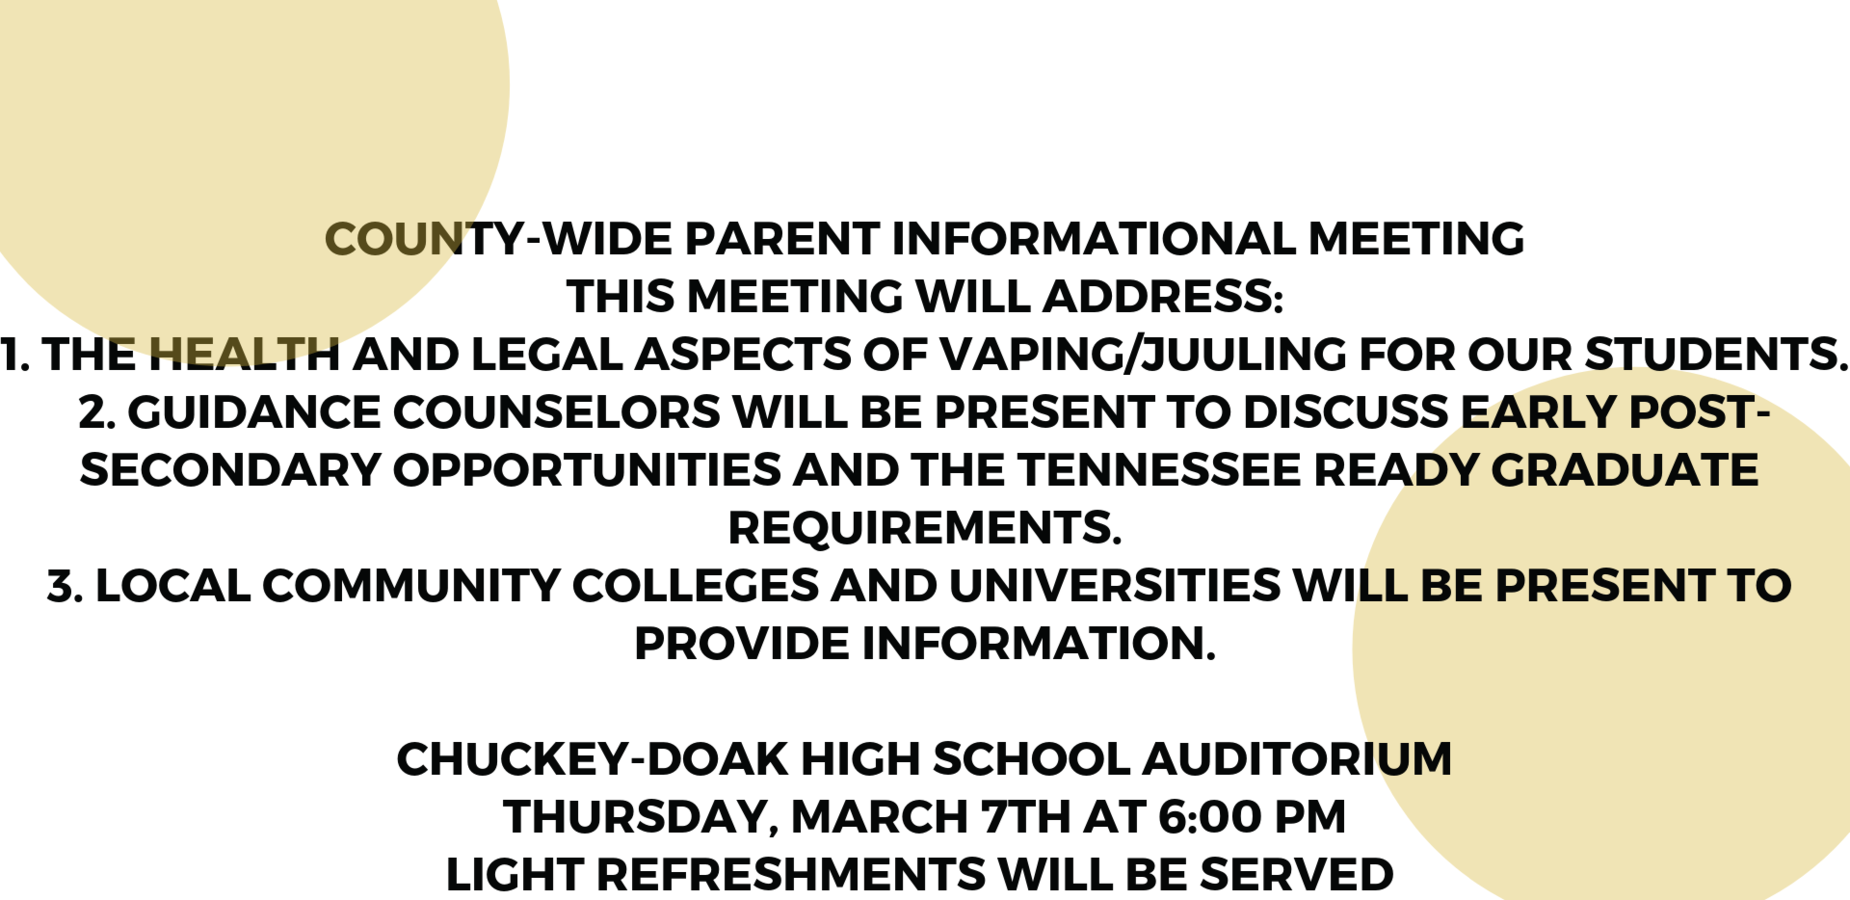 County-Wide Parent Informational Meeting at CDHS on Thursday, March 7th at 6:00 PM